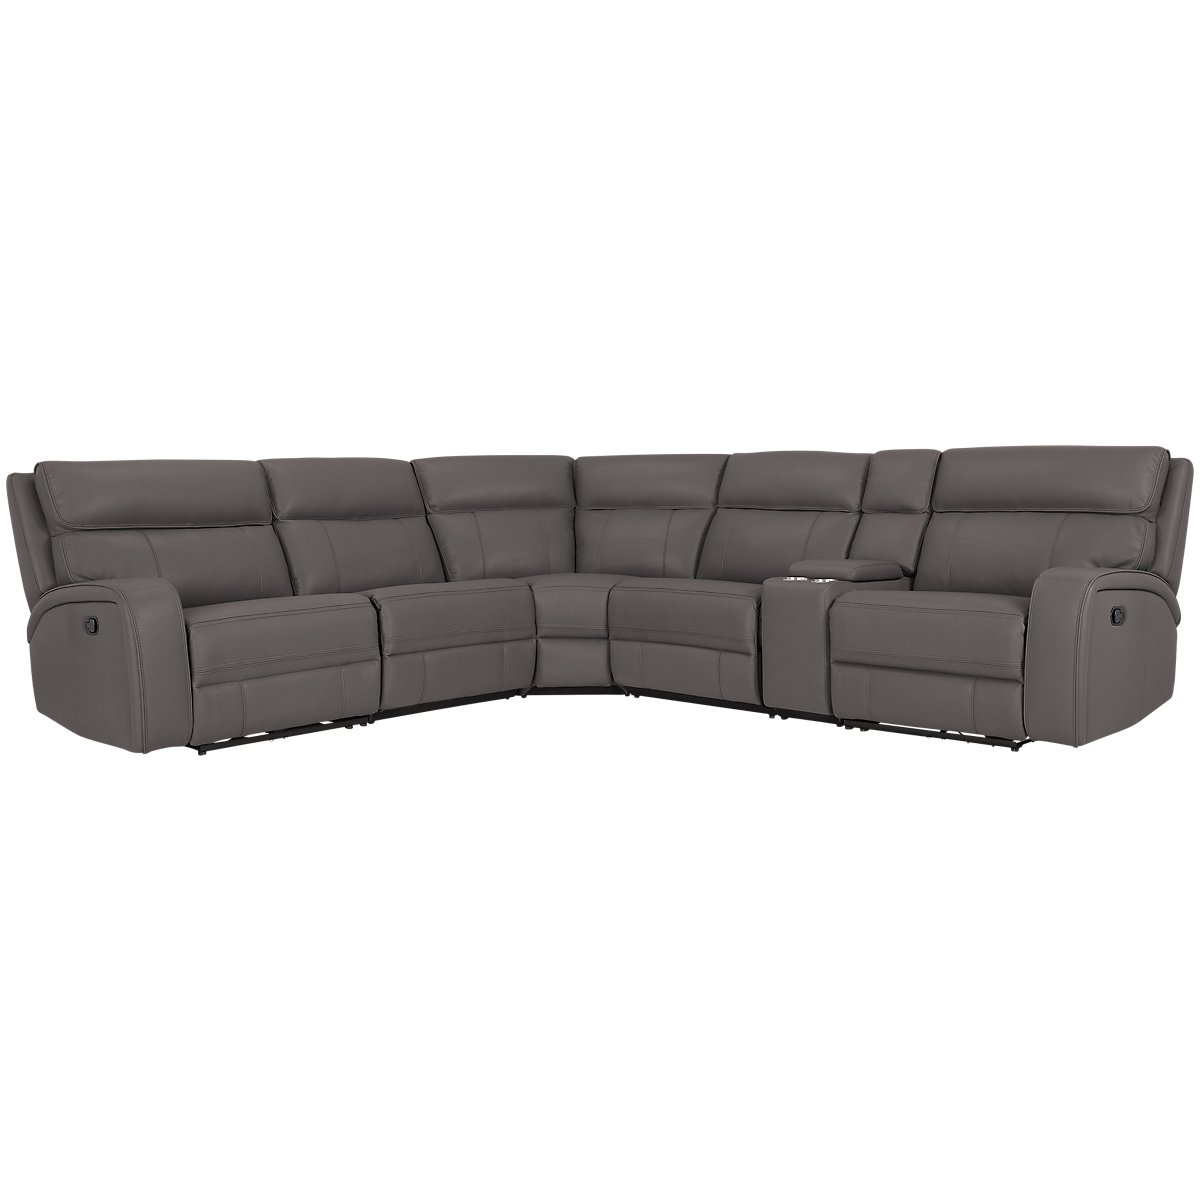 Rhett Gray Microfiber Small Two Arm Manually Reclining Sectional